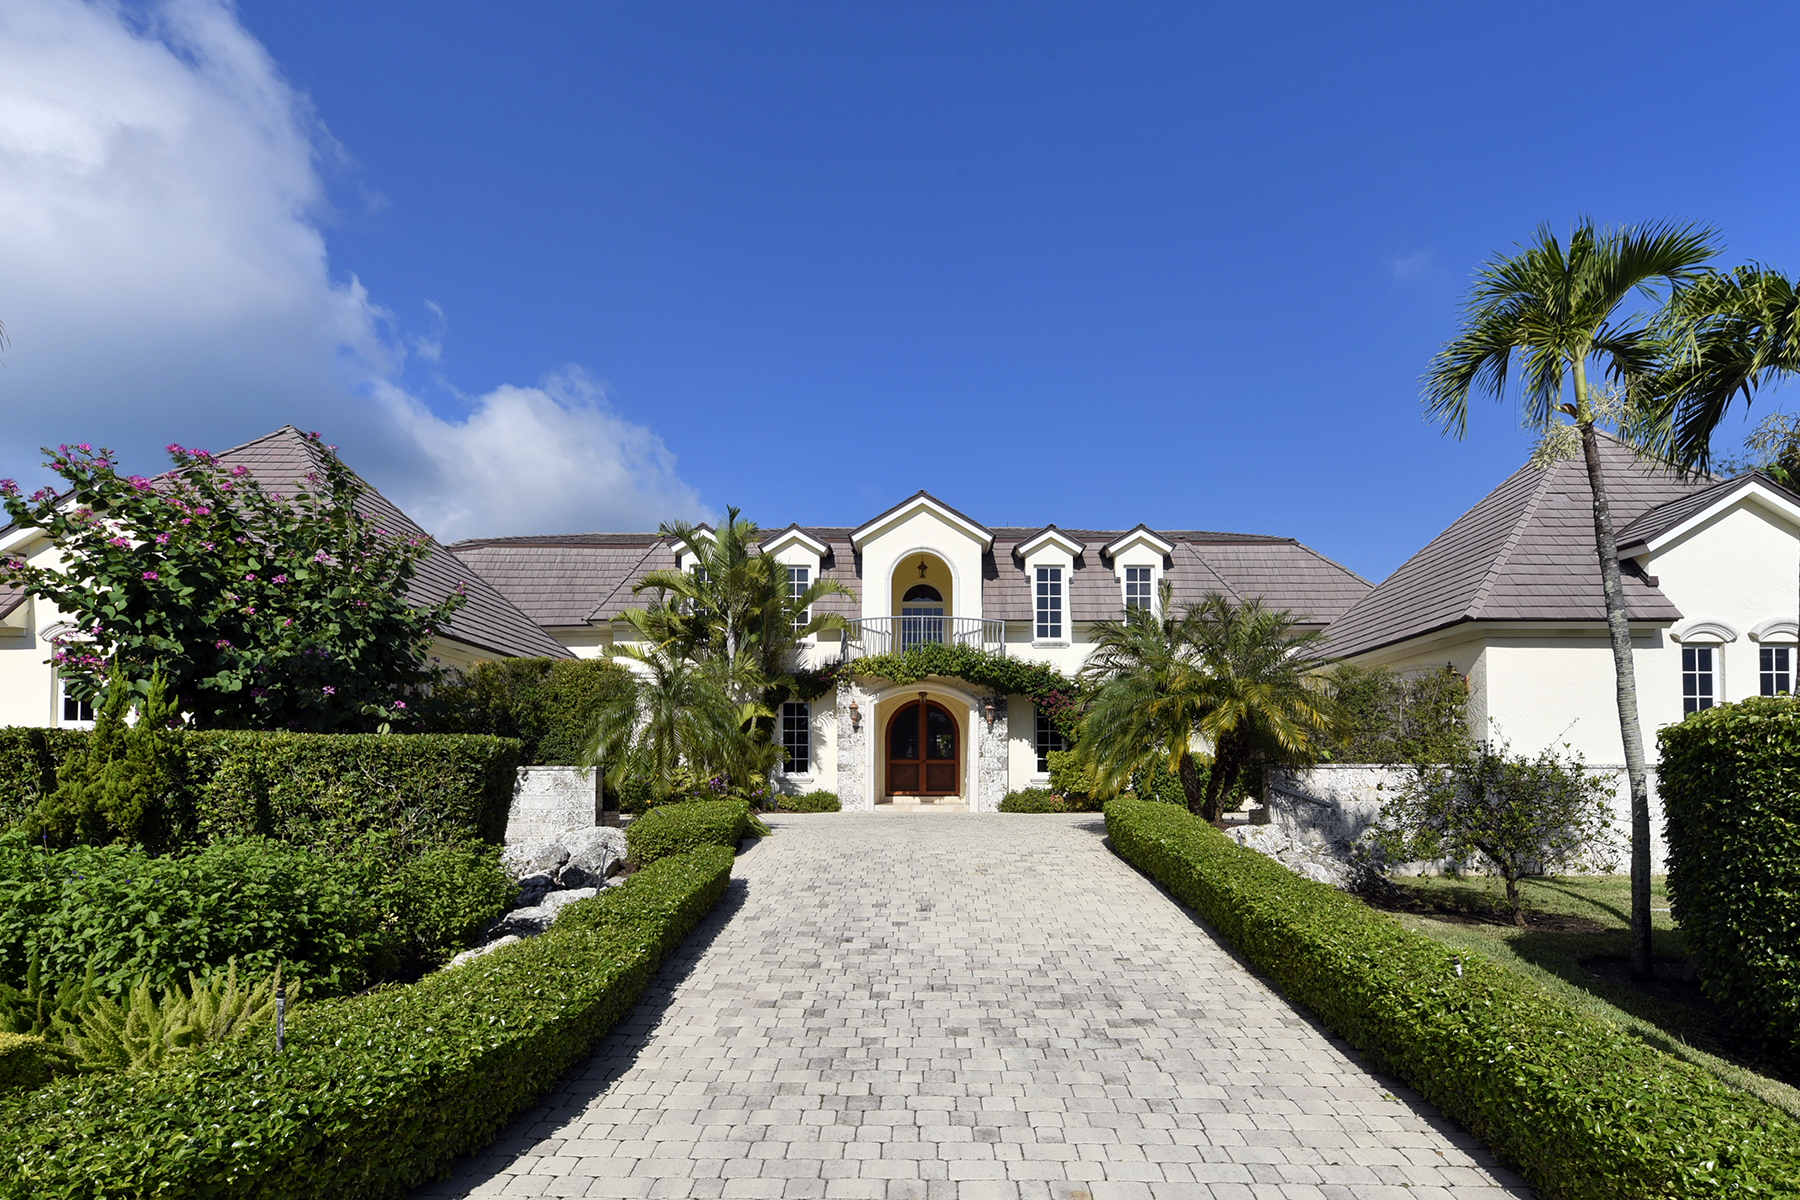 Maison unifamiliale pour l Vente à Expansive Waterfront Home at Ocean Reef 25 Bay Ridge Road Key Largo, Florida 33037 États-Unis